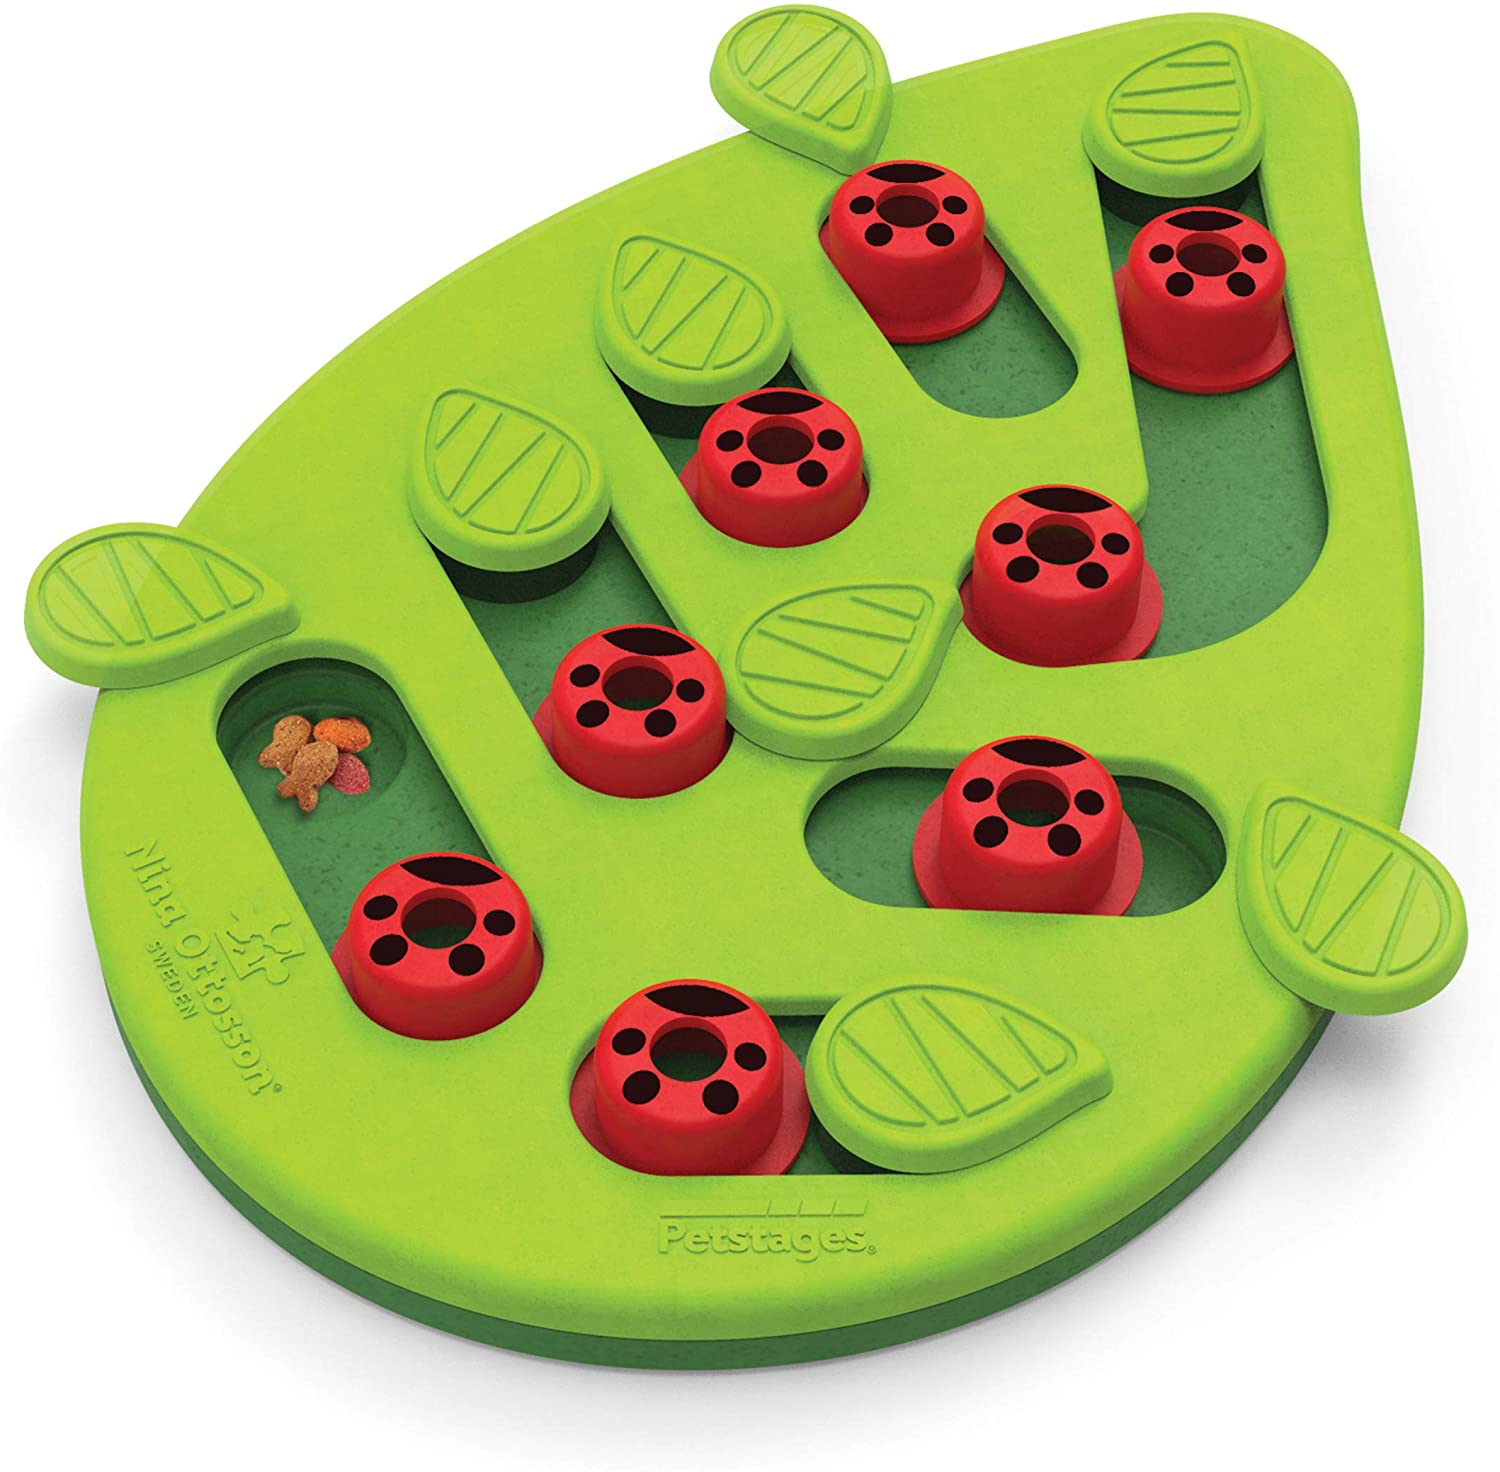 Petstages Interactive Cat Puzzles, Slow Feeders, and Treat Dispensing Toys